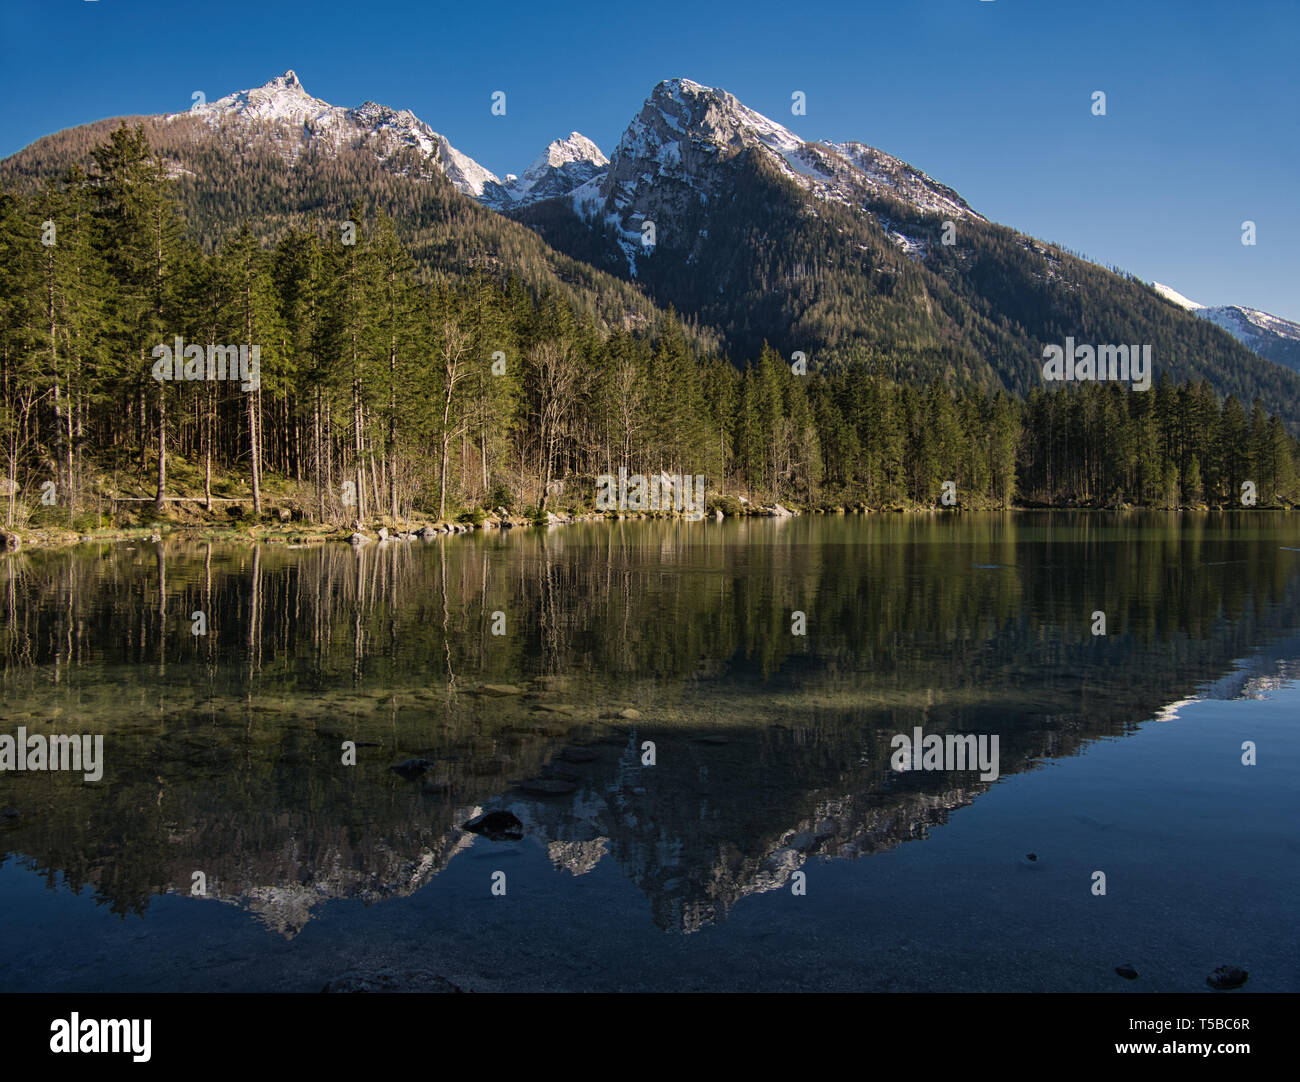 The partly still snow-covered mountains are reflected in the mountain lake. - Stock Image